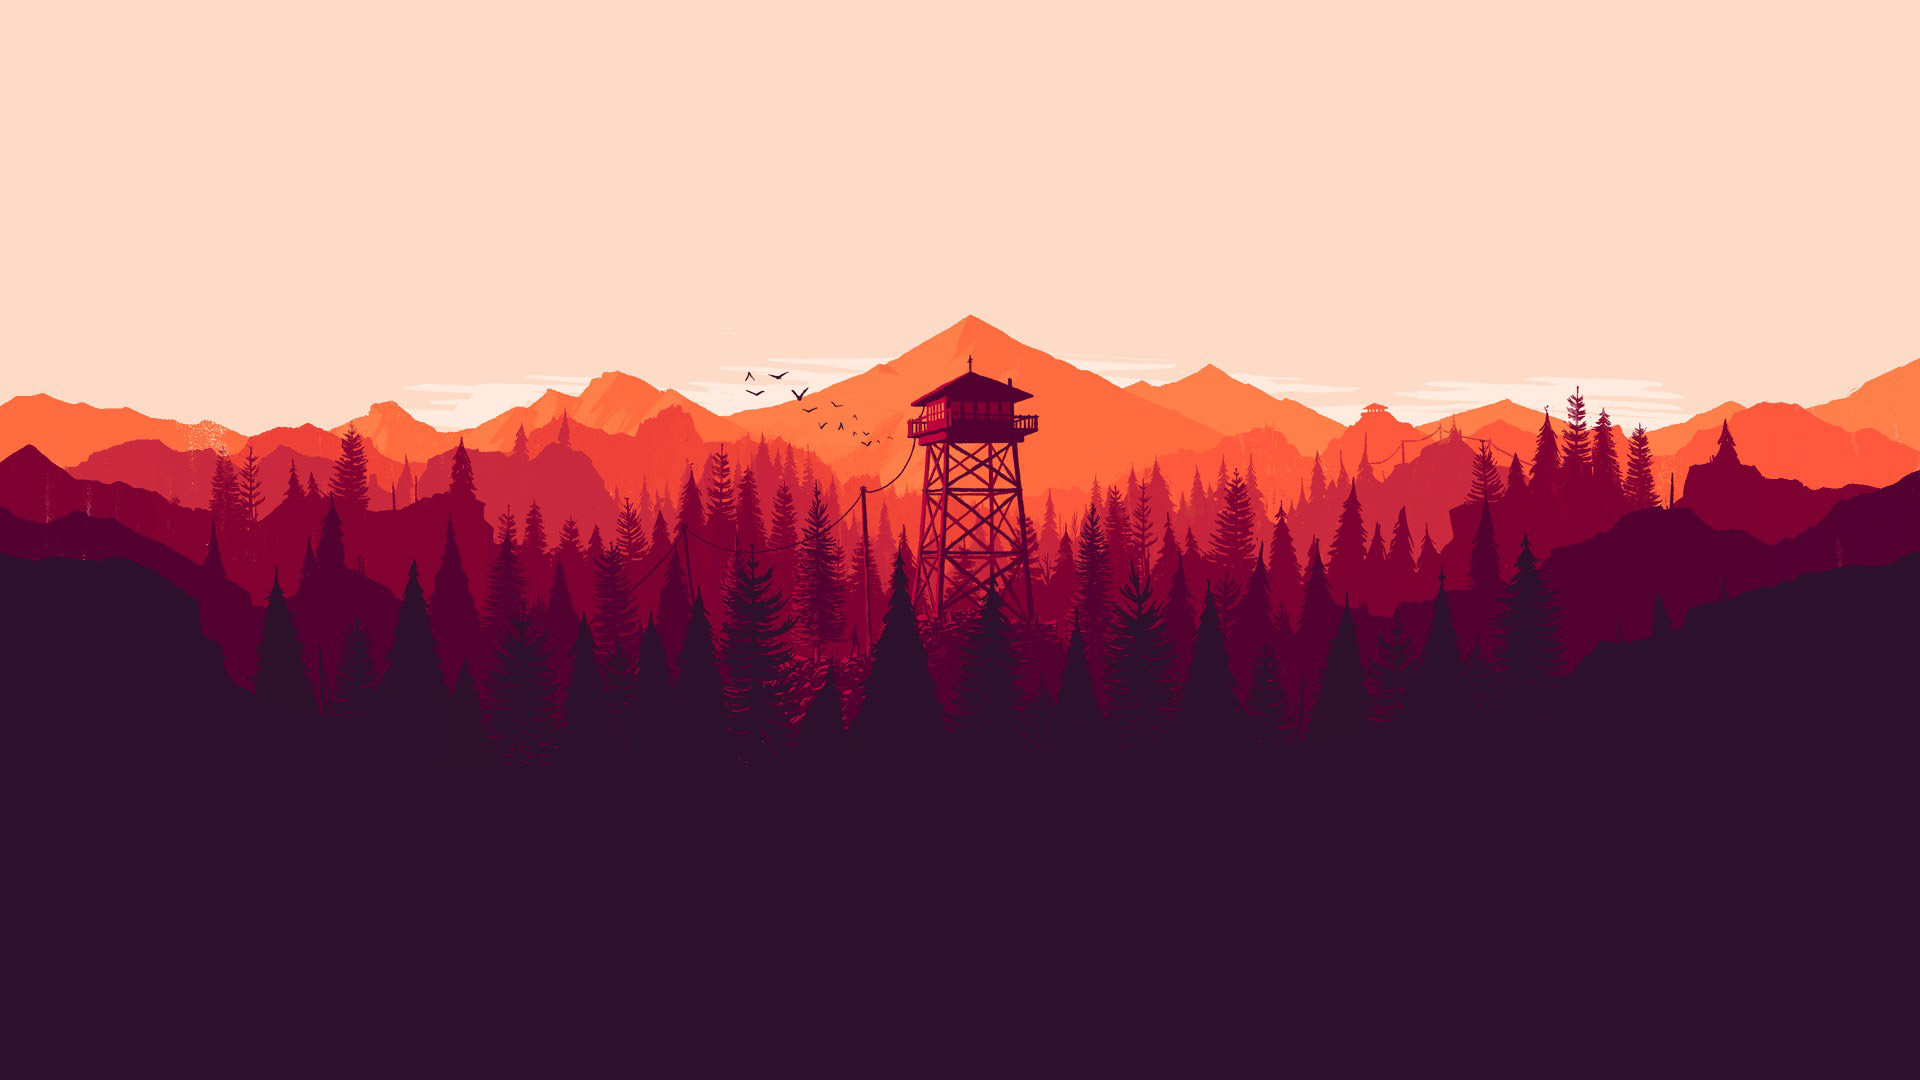 minimalist desktop wallpaper